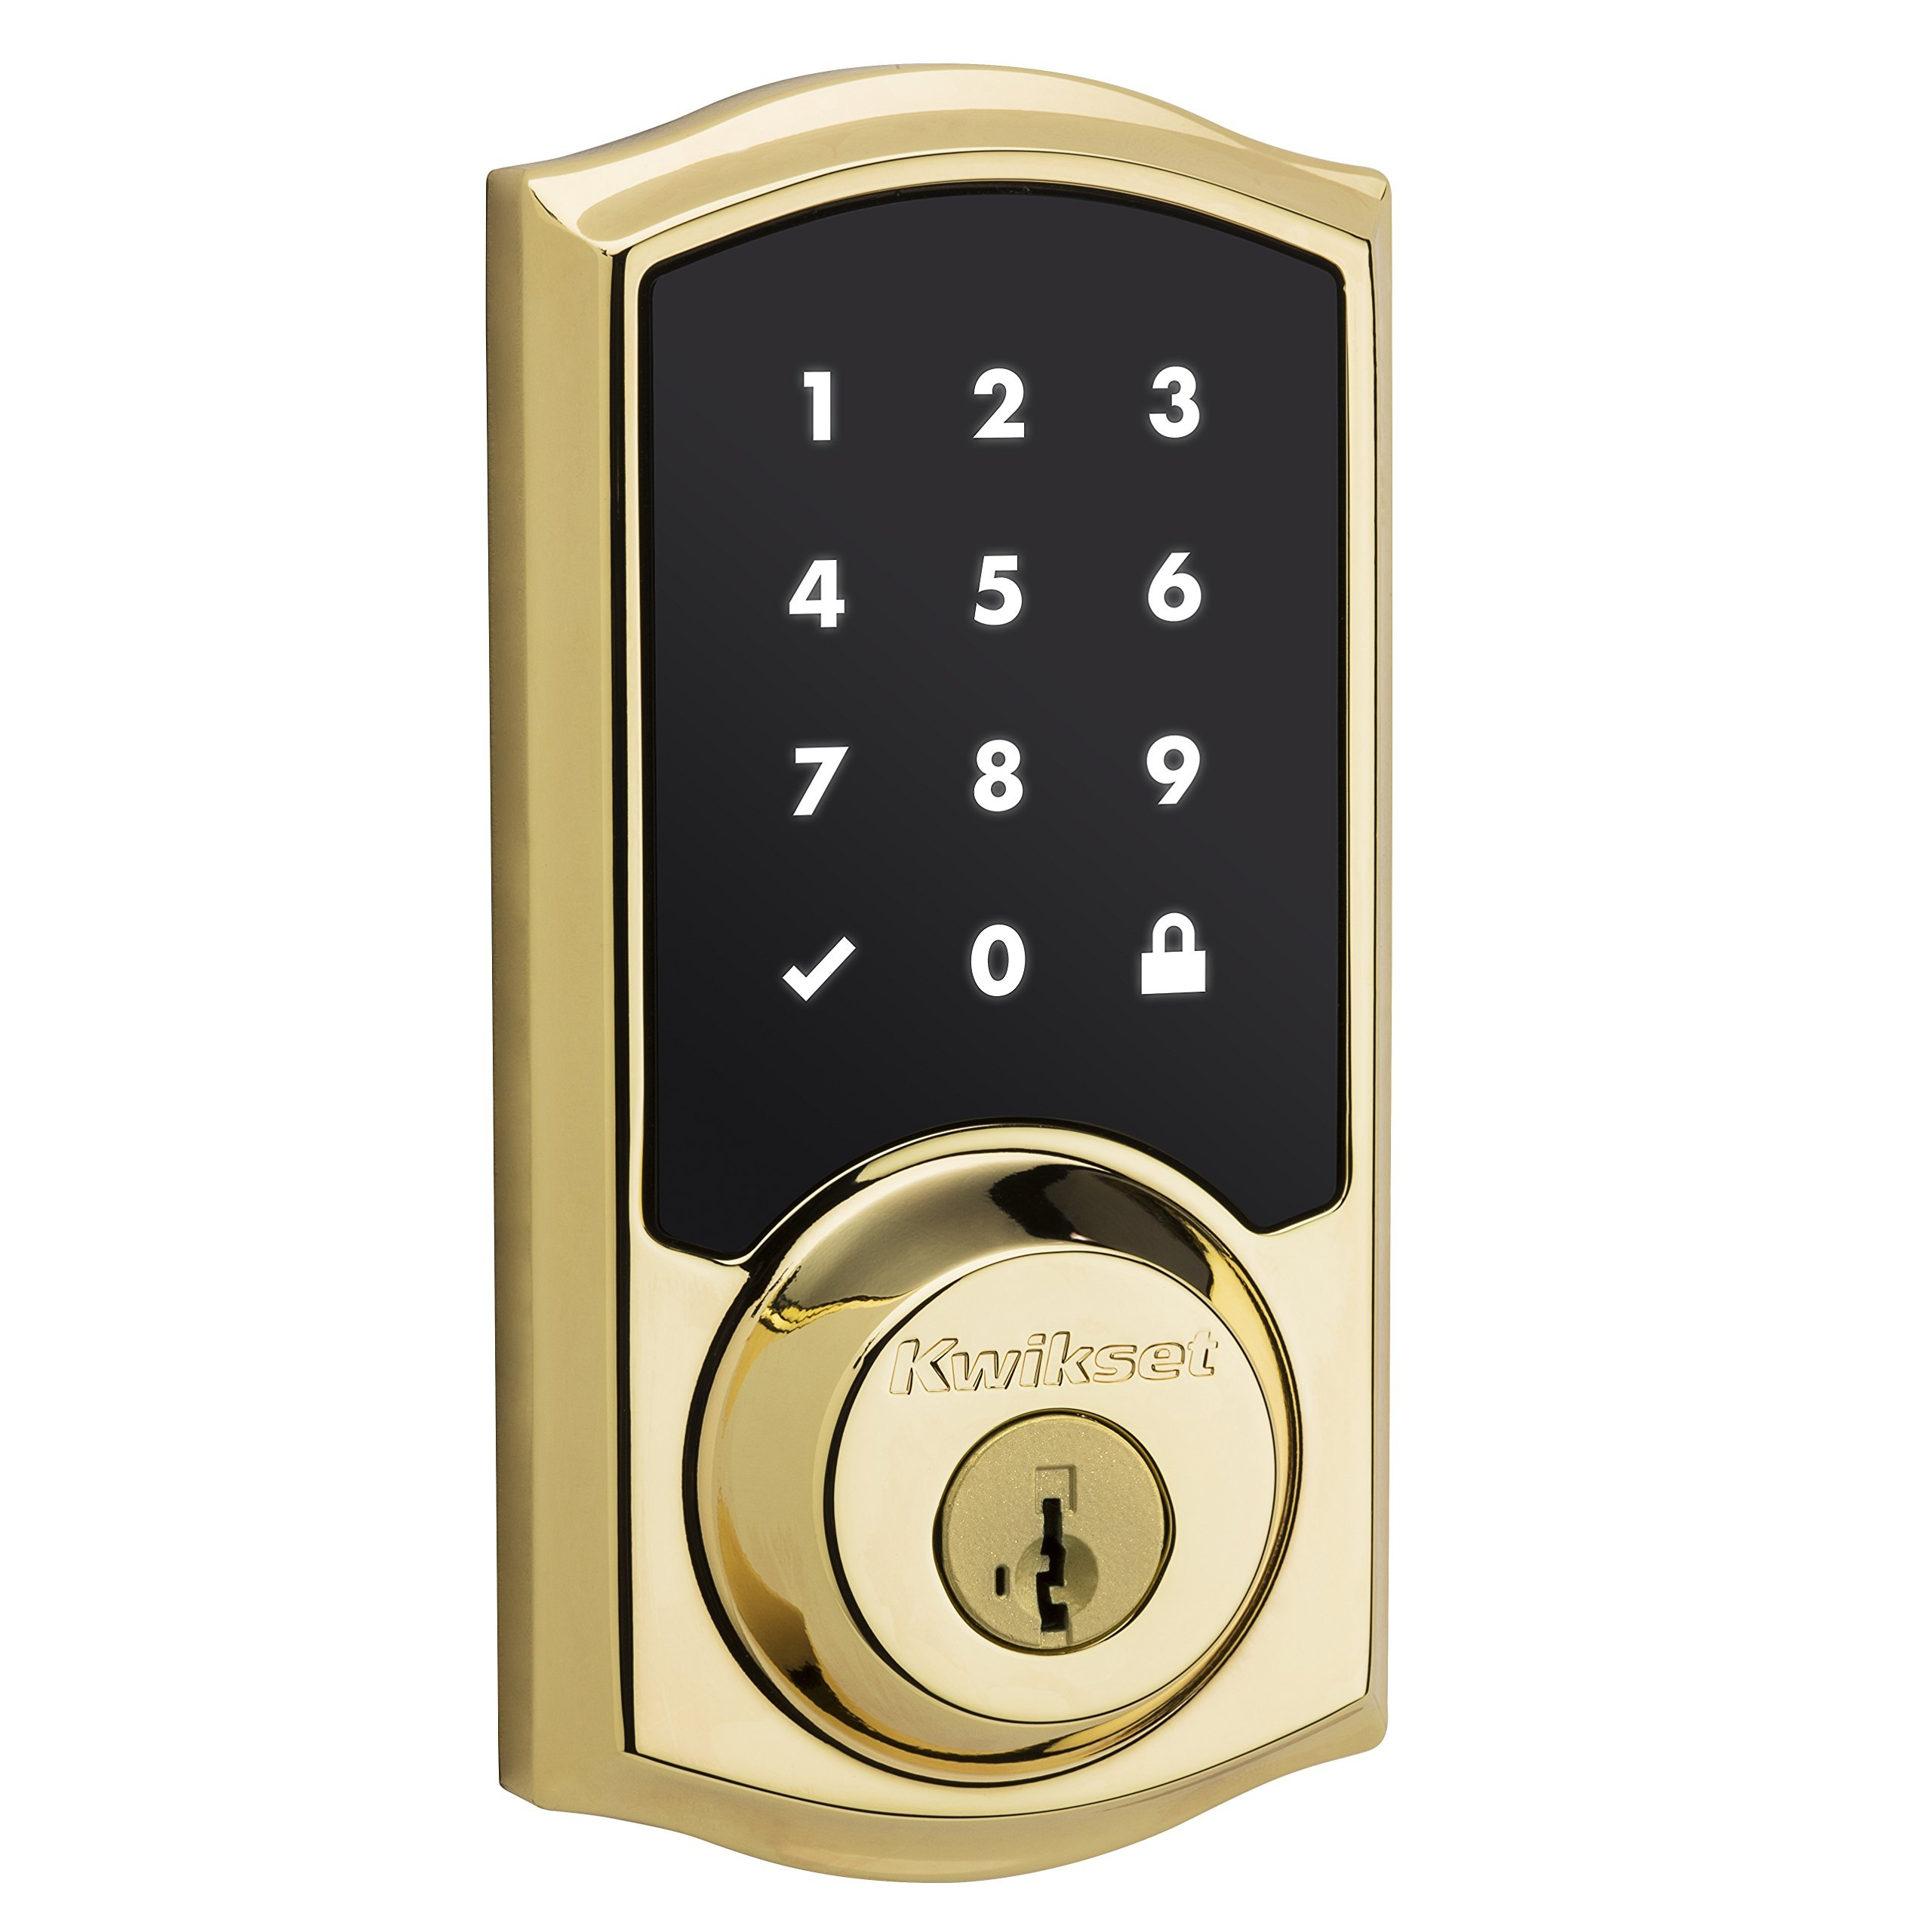 Kwikset 99160-007 SmartCode ZigBee Touchscreen Smart Lock works with Echo Plus & Alexa, featuring SmartKey, Lifetime Polished Brass by Kwikset (Image #2)